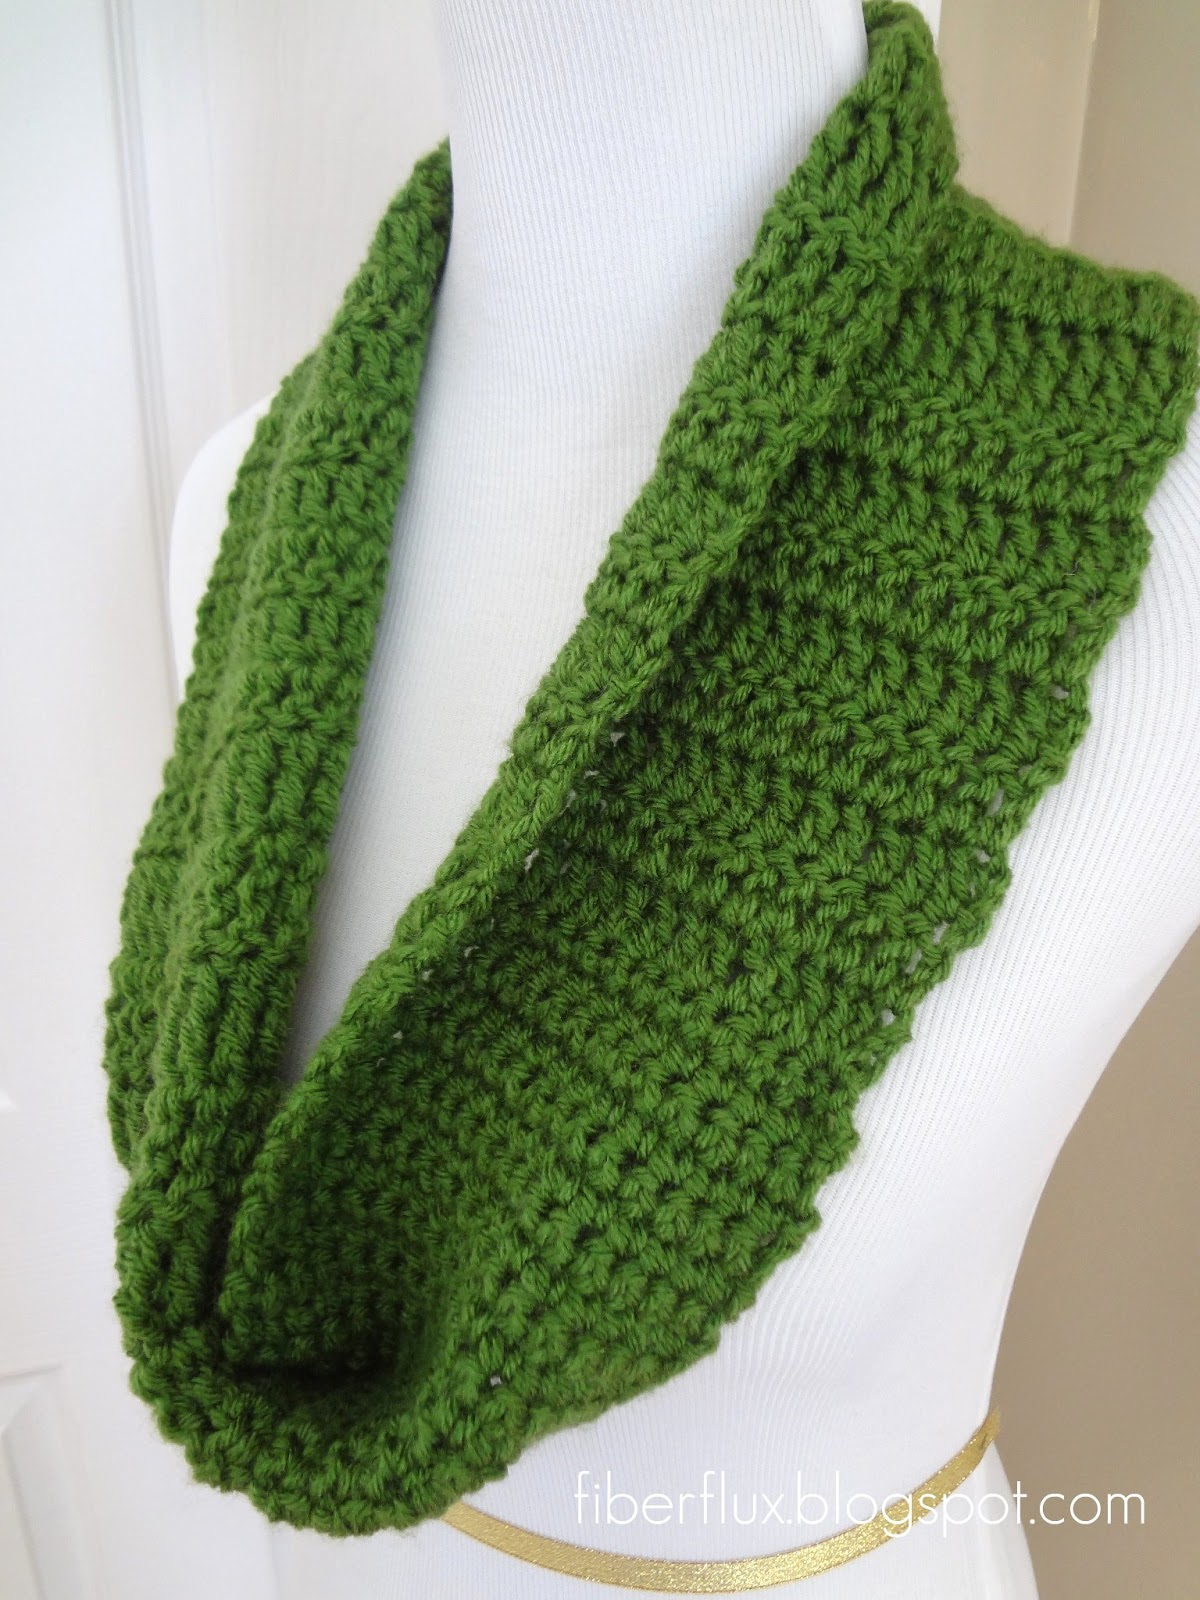 Free Crochet Patterns Cowls : Fiber Flux: Free Crochet Pattern...Crochet Class Cowl!